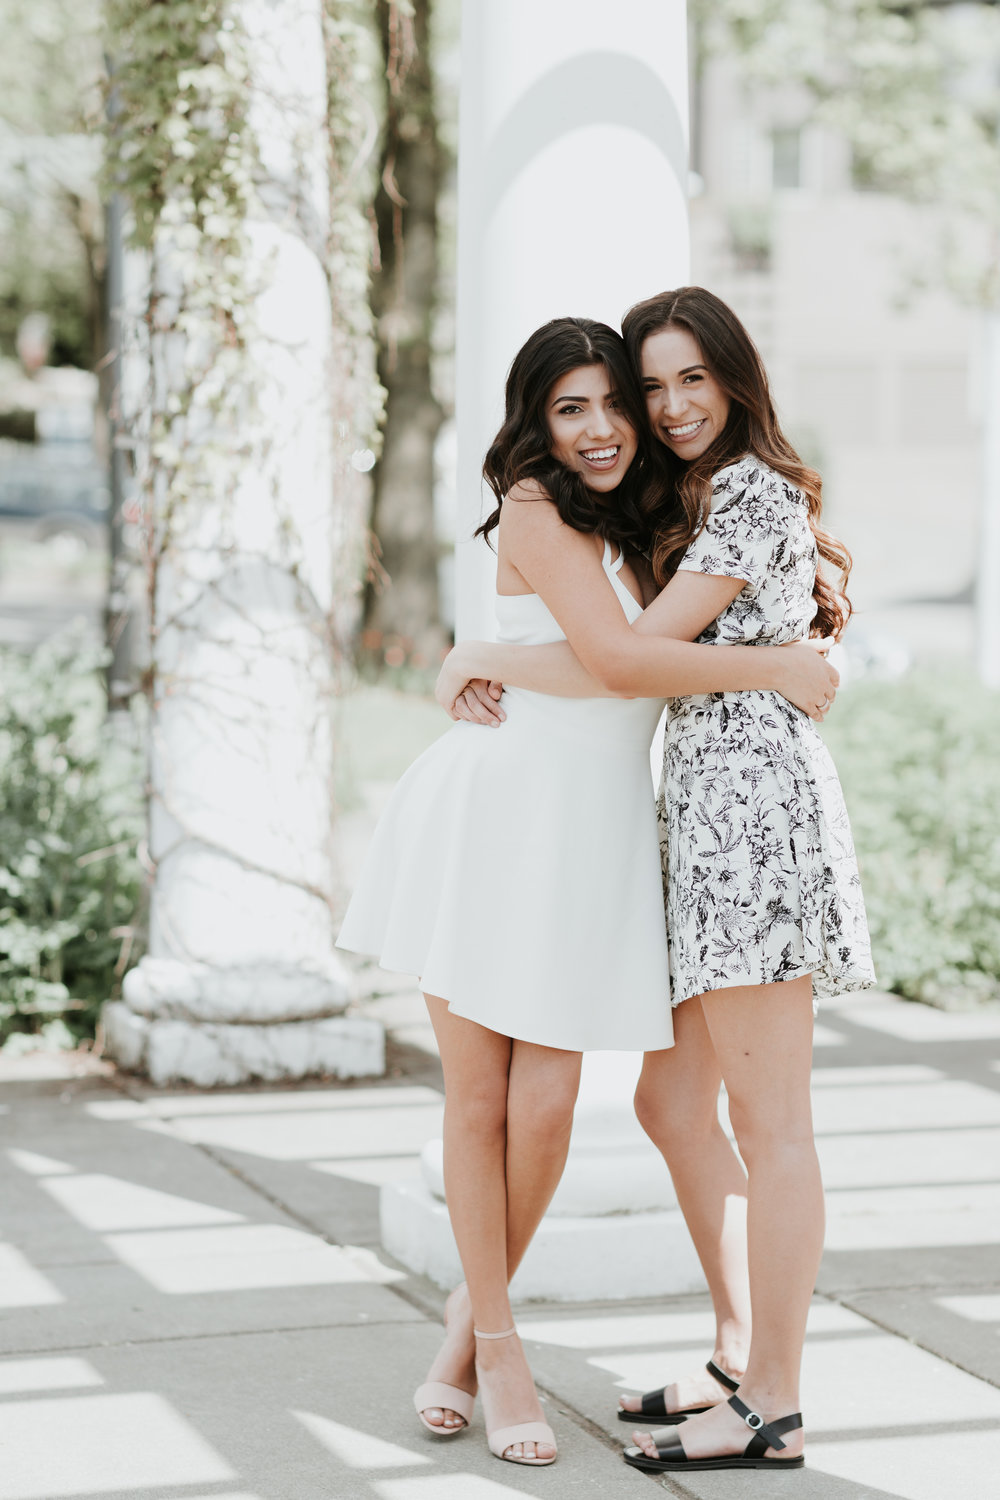 I'm so happy Alyssa was able to join our shoot as well. She was there for moral support & extra laughs. Nicole & Alyssa actually met during their first week at NU and have remained best friends (even roommates) ever since!